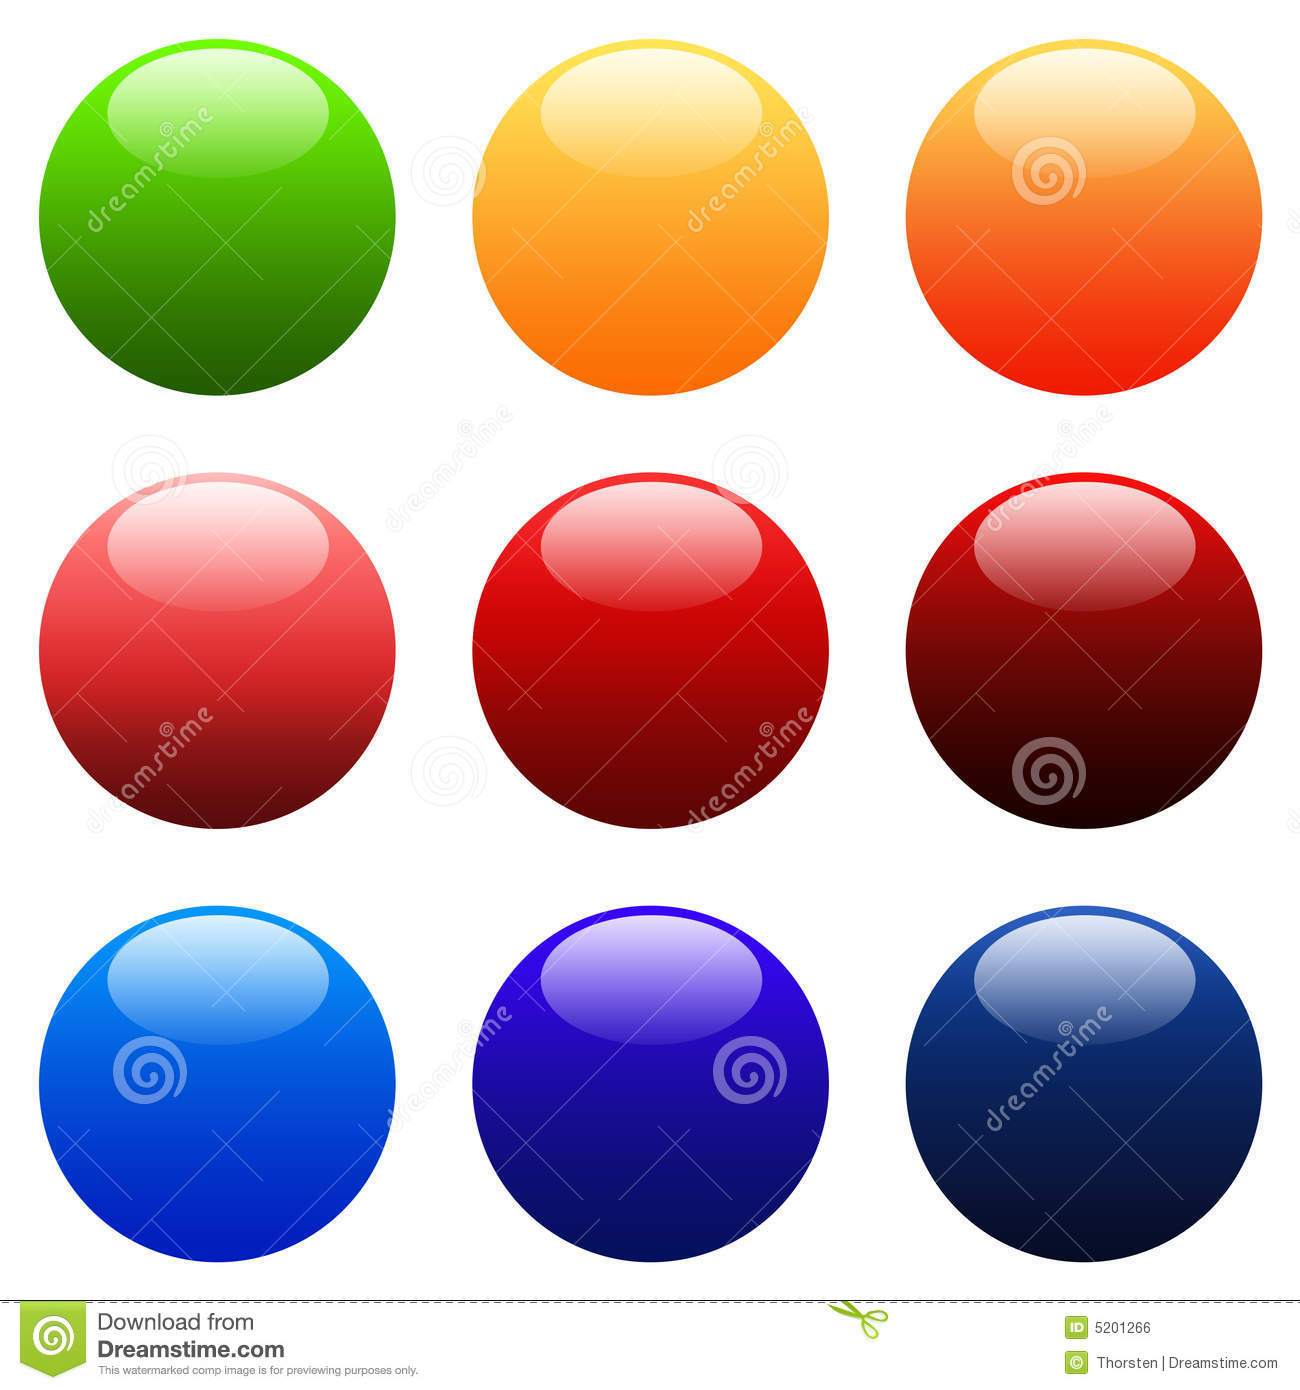 ... Round Gradient Web Buttons Royalty Free Stock Image - Image: 5201266